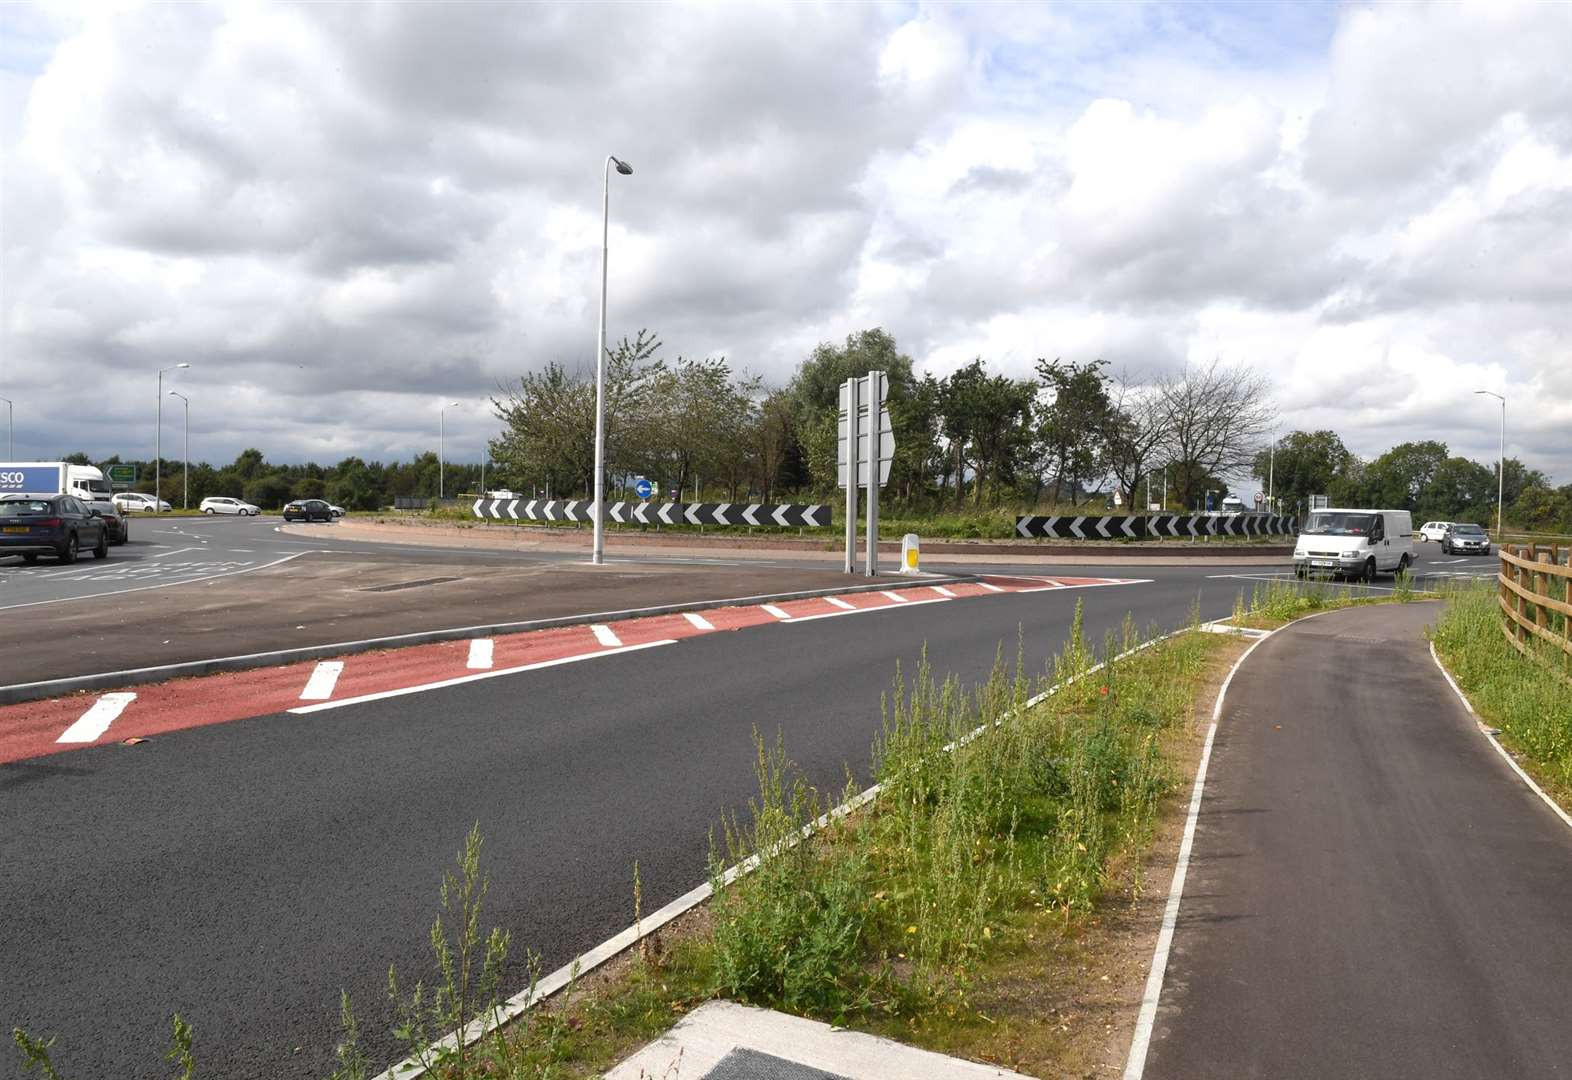 POLL: Do you think the cattle market roundabout is dangerous?